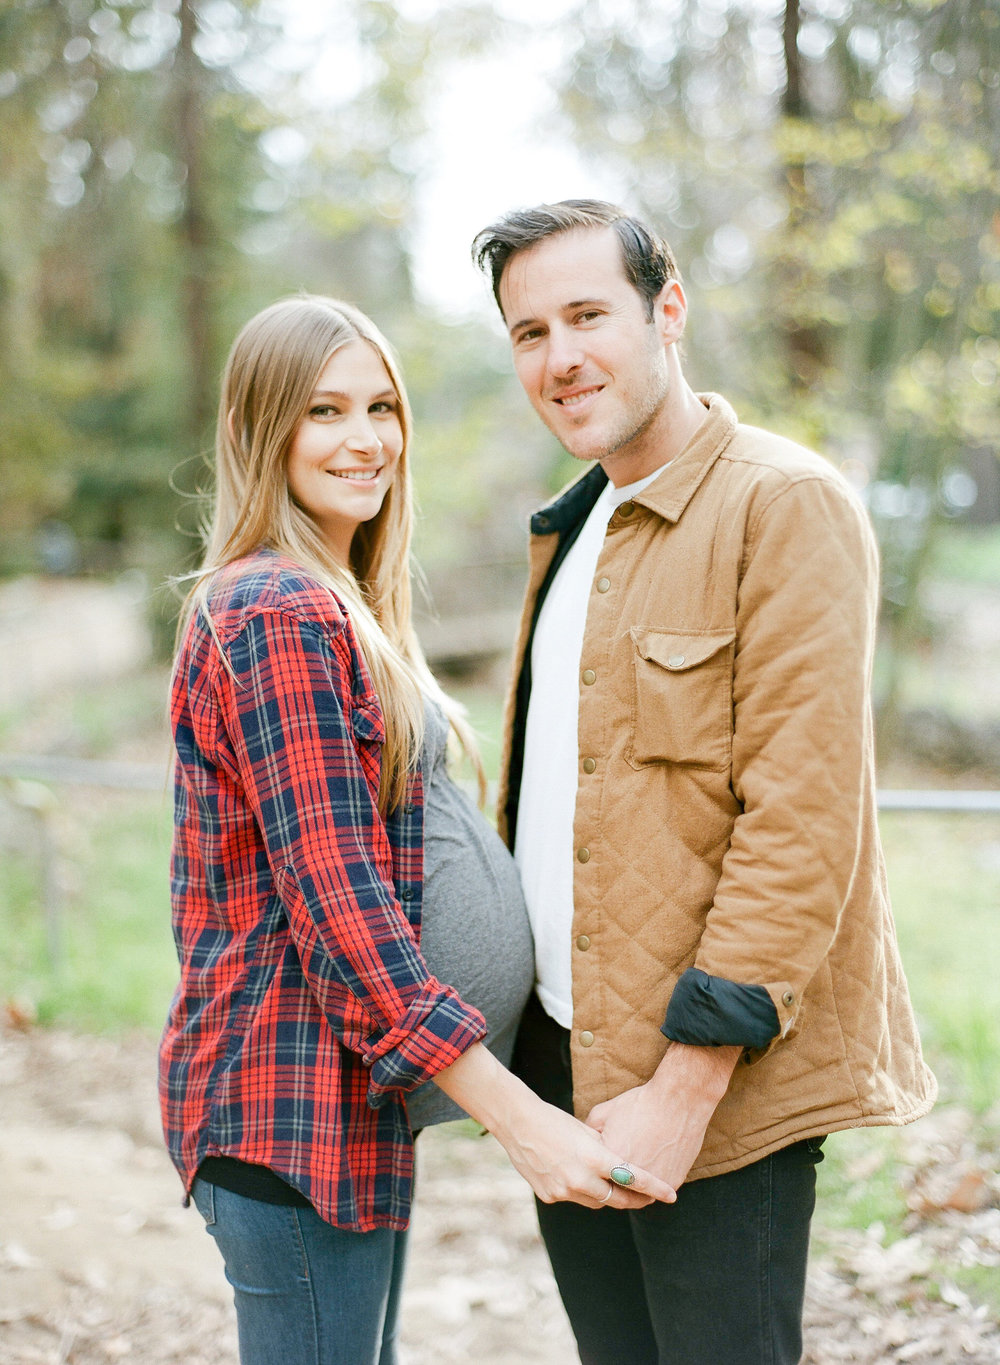 Chrissy & David Maternity Session-3.jpg